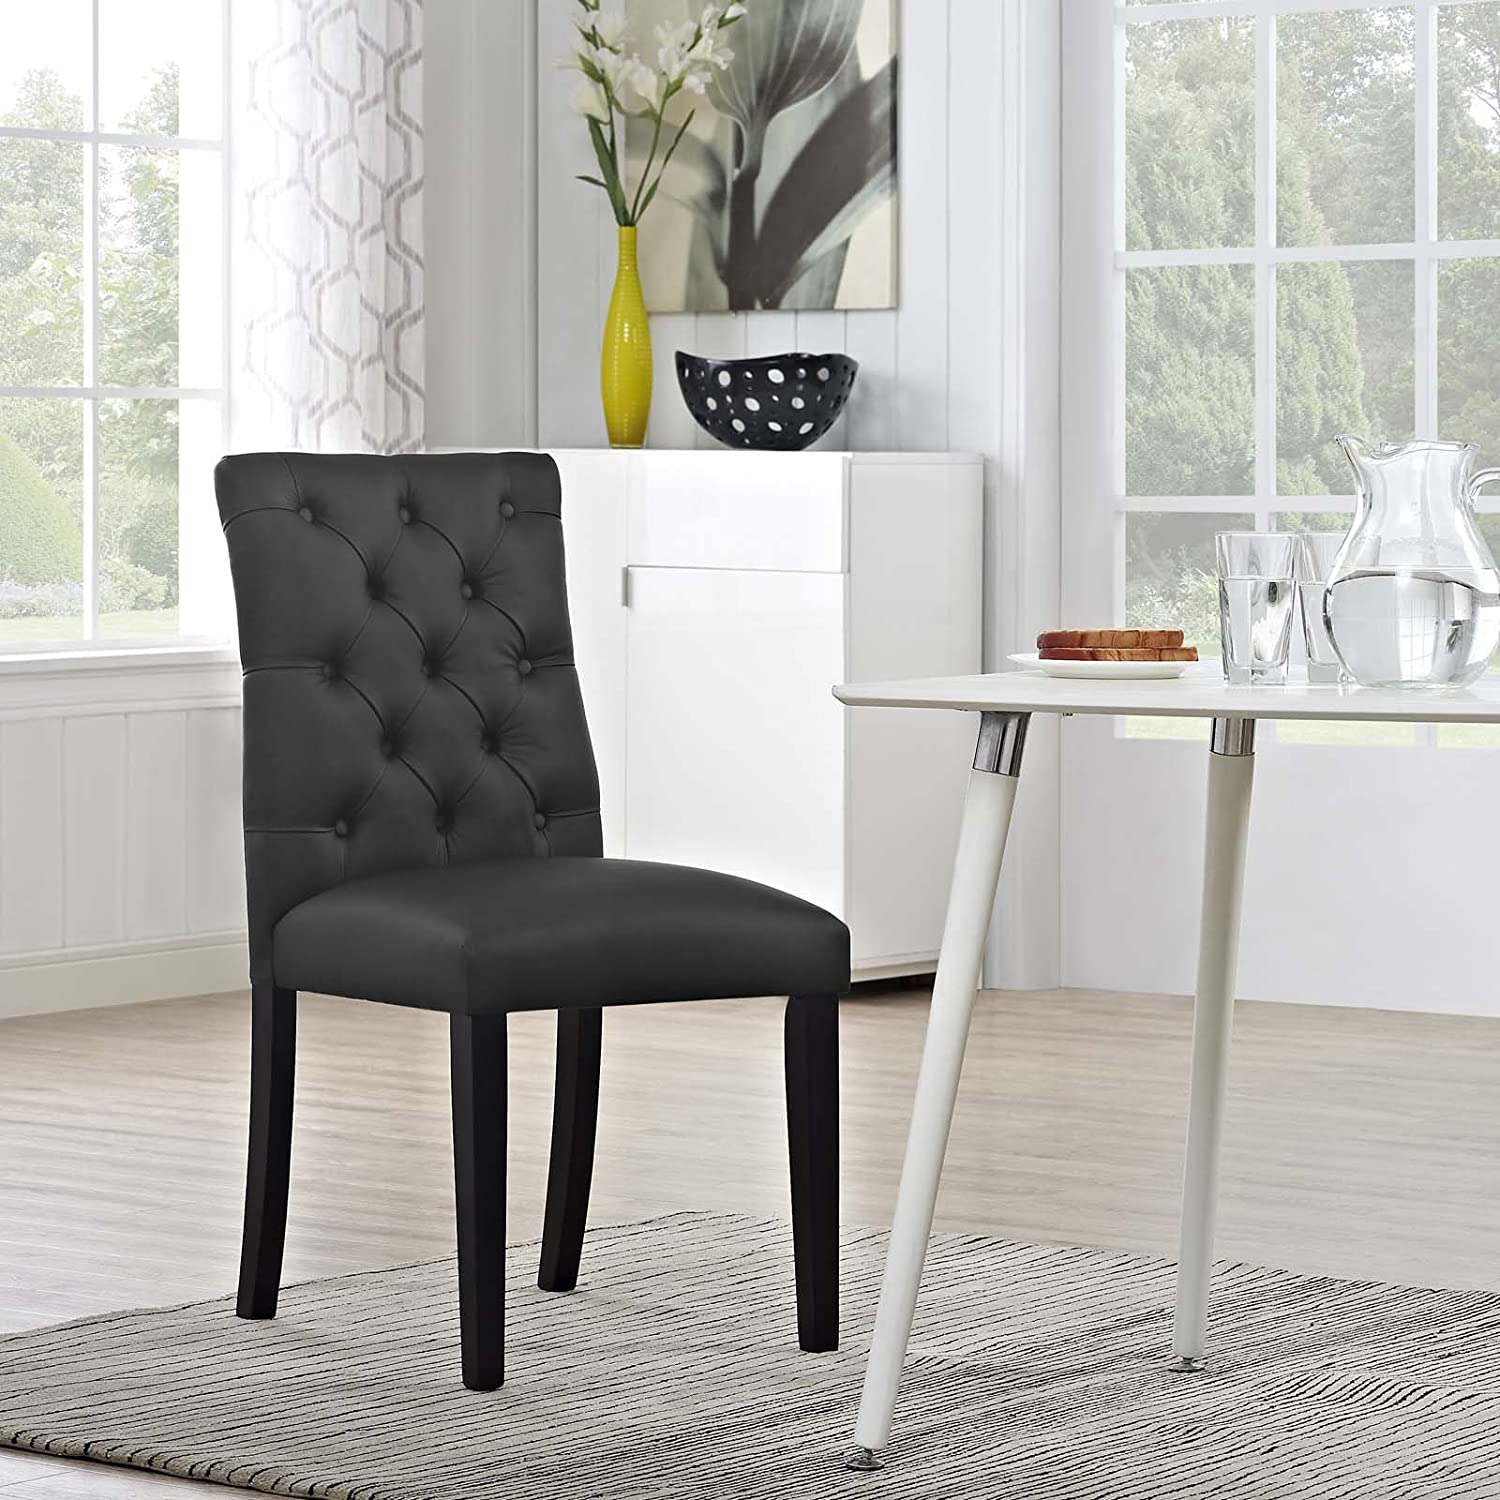 Modway Duchess Modern Tufted Button Faux Leather Upholstered Parsons Kitchen and Dining Room Chair in Black